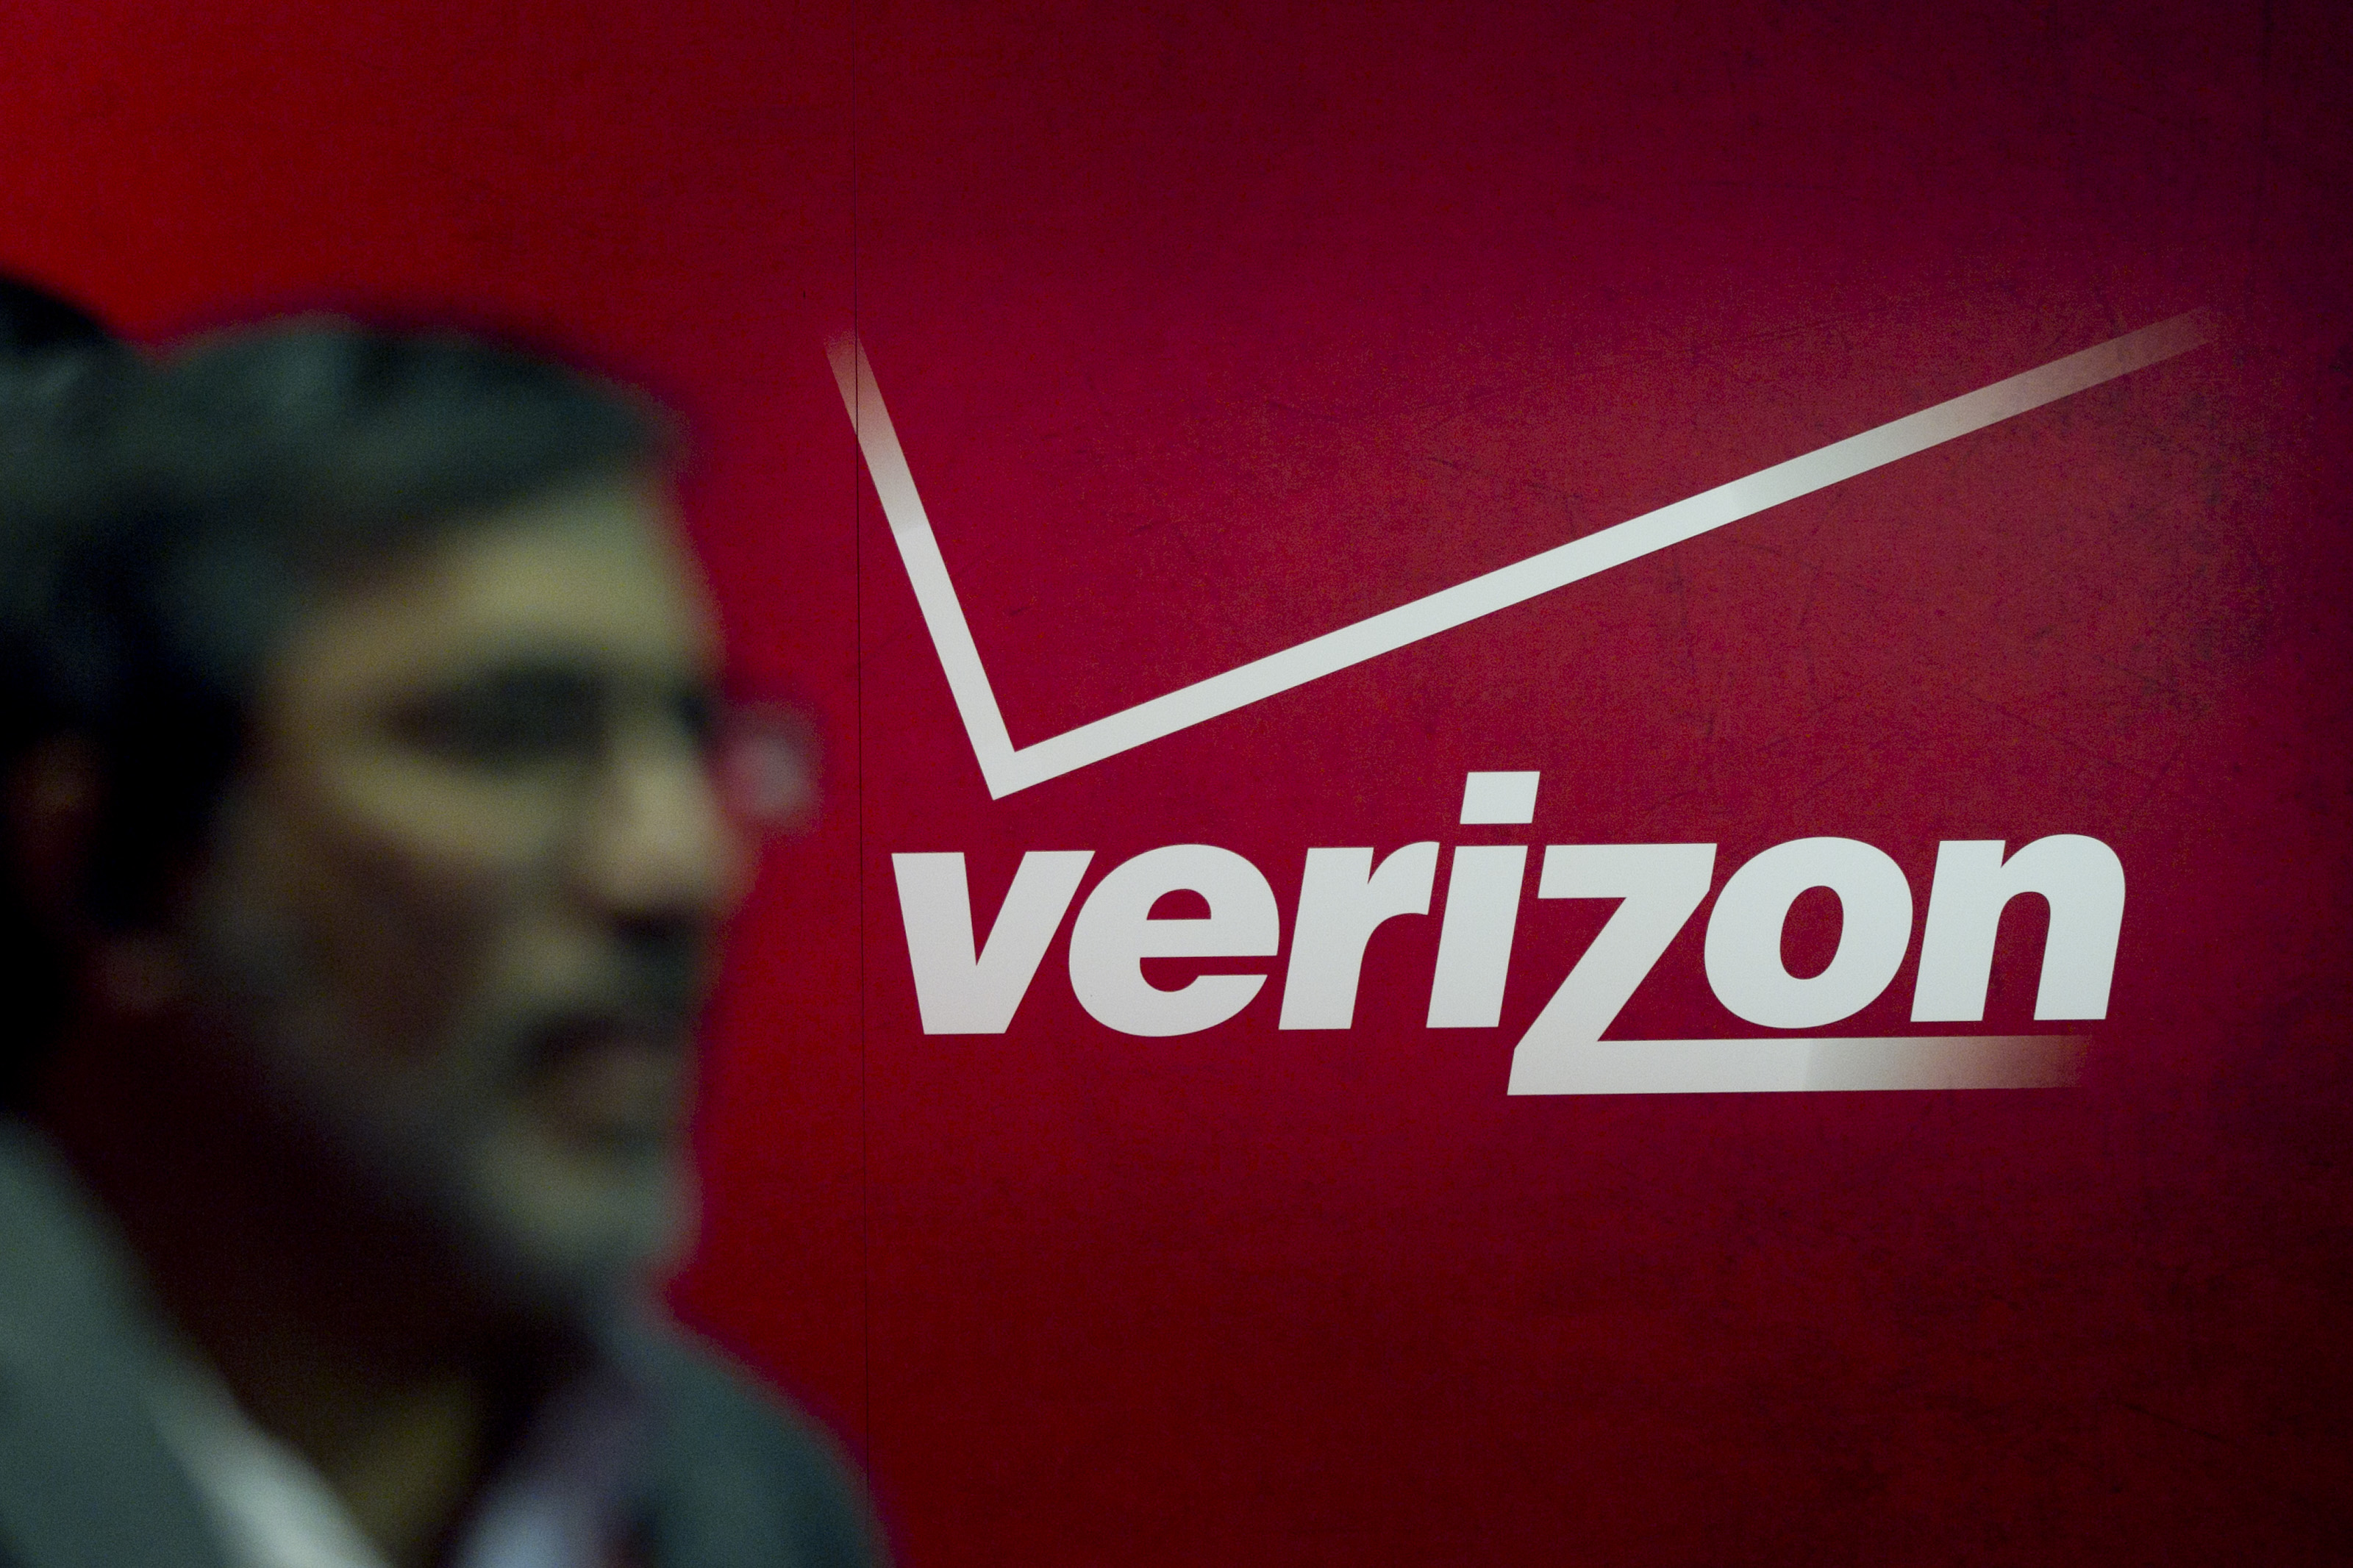 The Verizon Communications Inc. logo at the International Consumer Electronics Show (CES) in Las Vegas on Jan. 12, 2012.